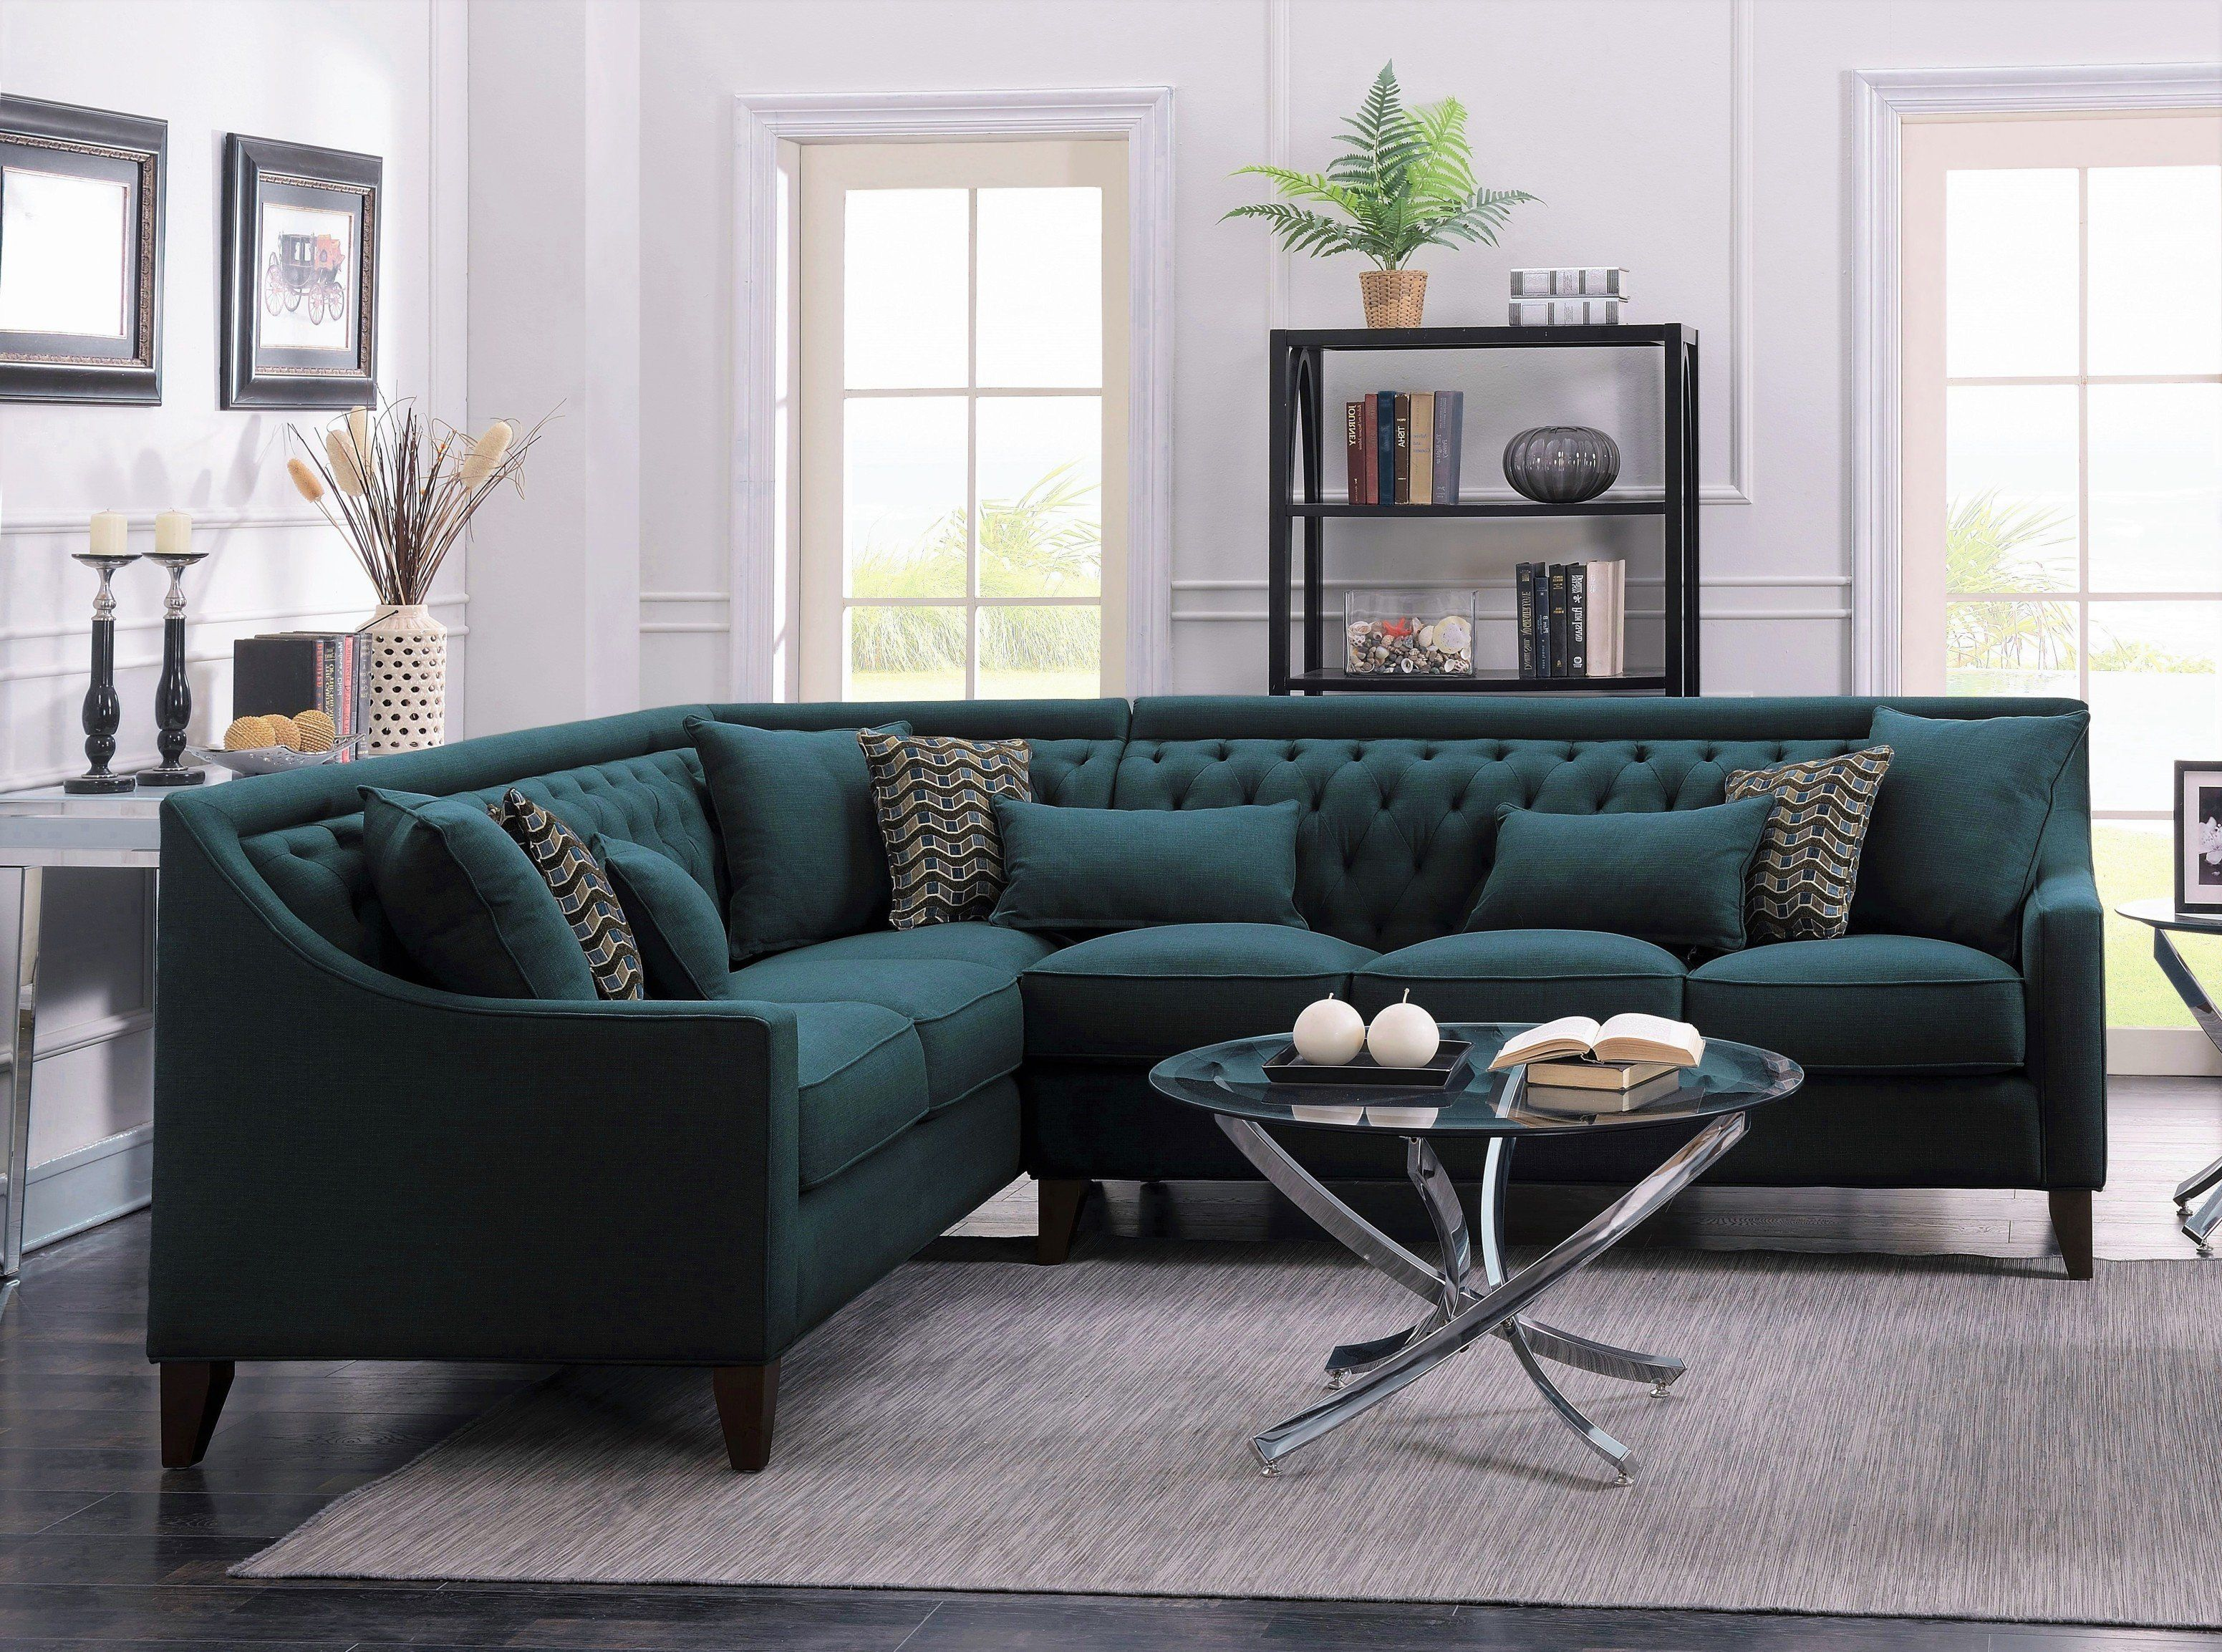 Iconic Home Aberdeen Linen Tufted Left Facing Sectional Sofa Teal Grey Sectional Sofa Sectional Sofa Living Room Furniture